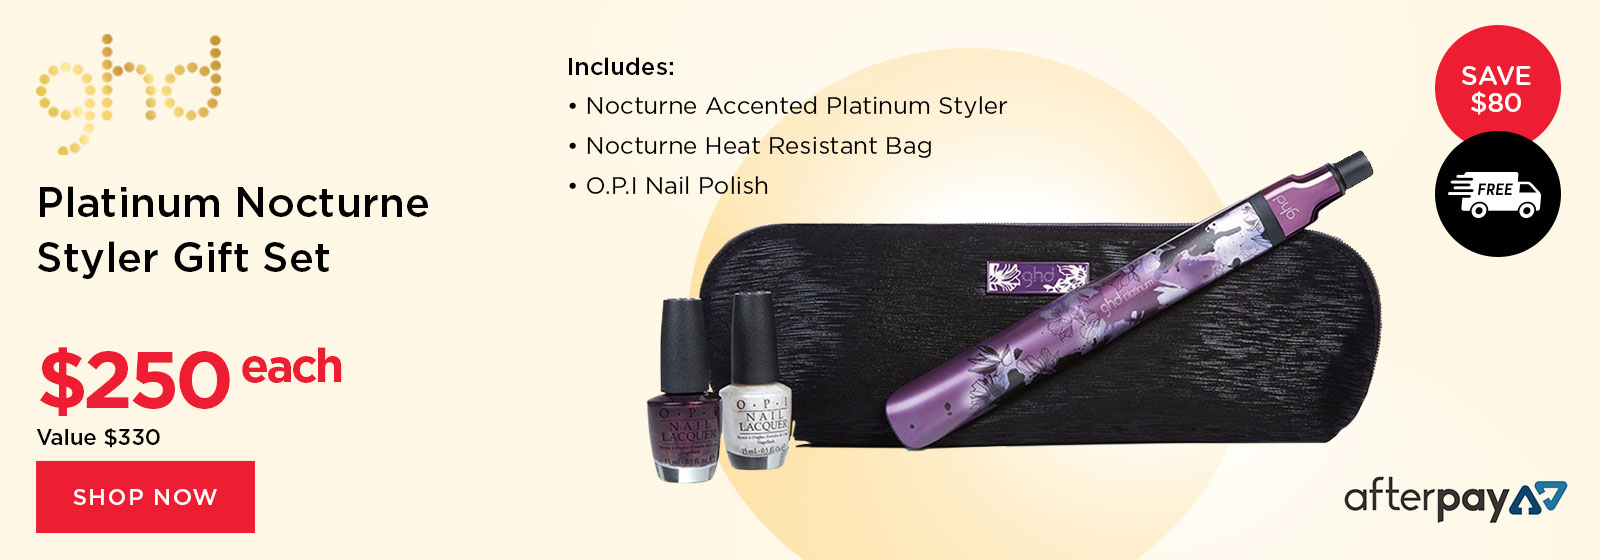 ghd Nocturne Styler Gift Set